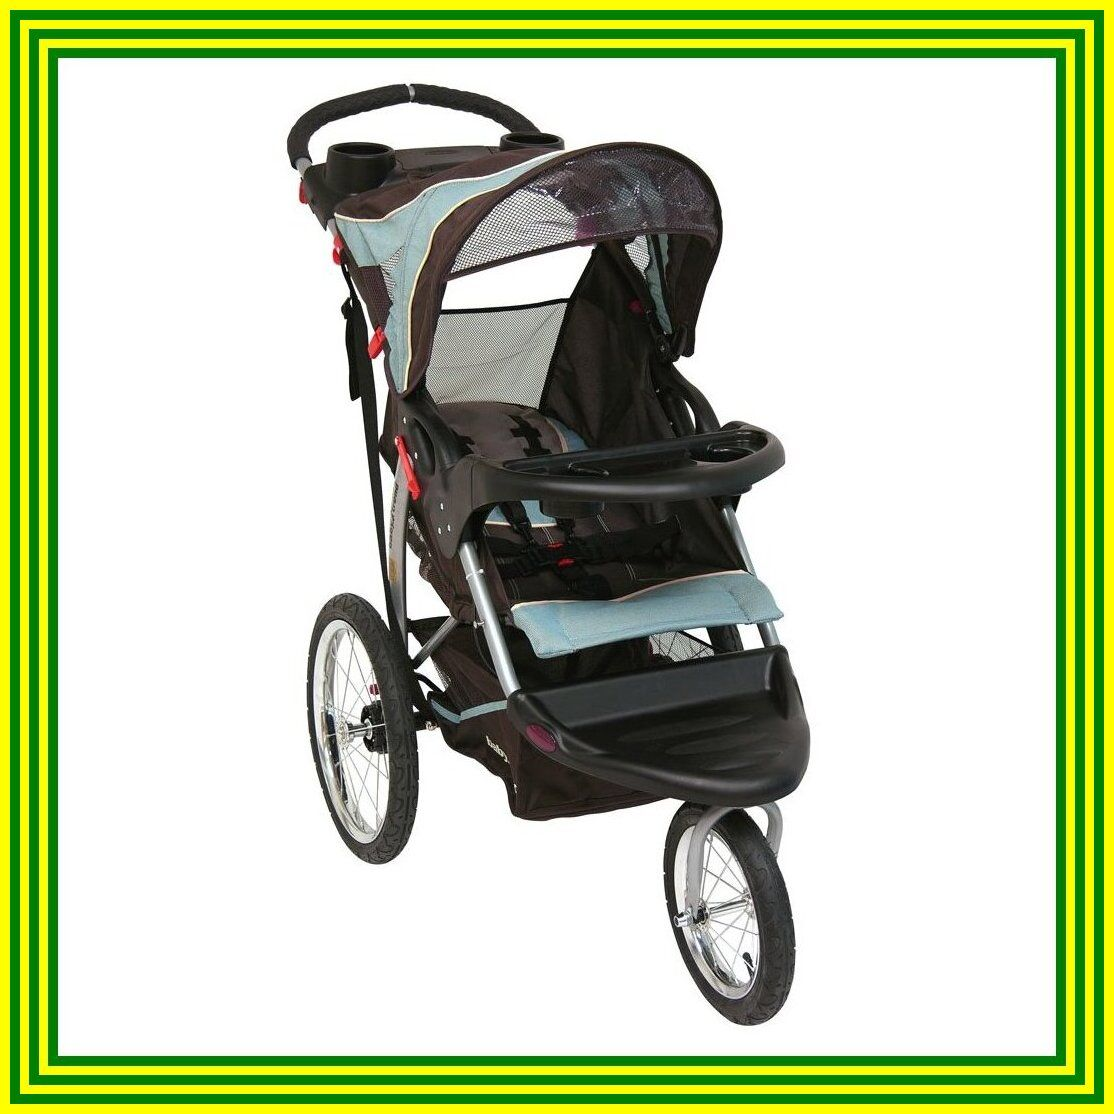 114 reference of baby trend jogging stroller pink in 2020